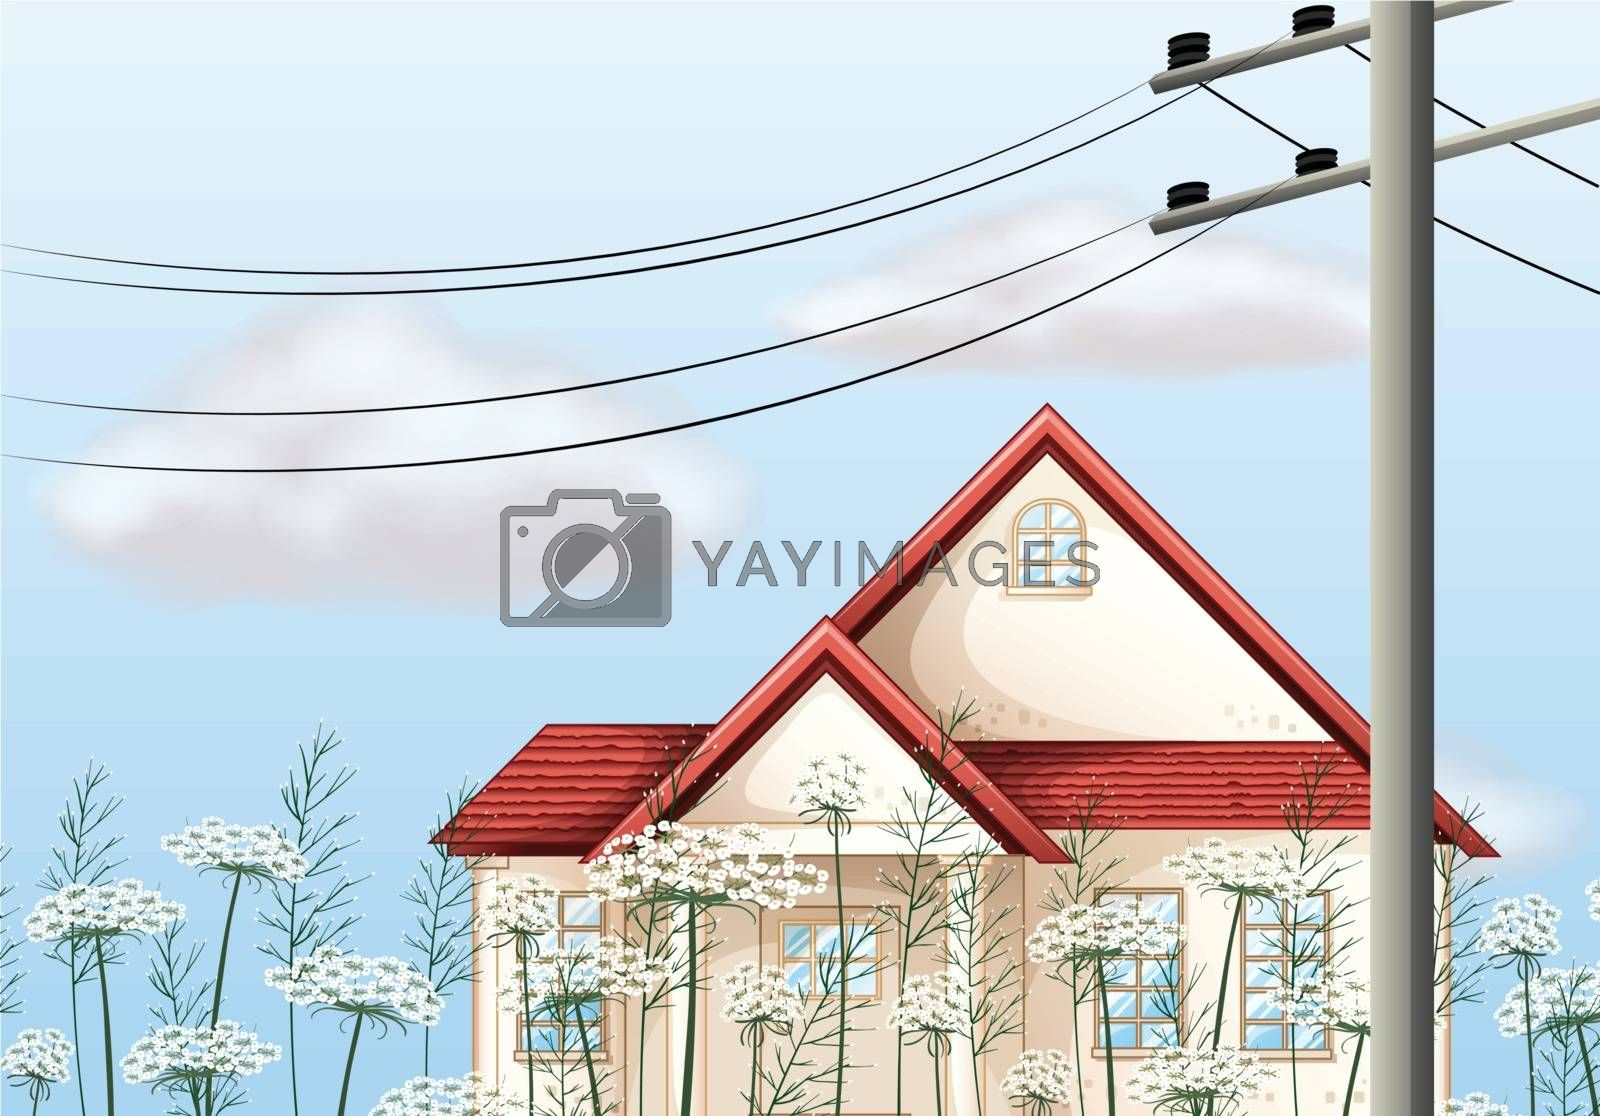 Illustration of a red color roof house